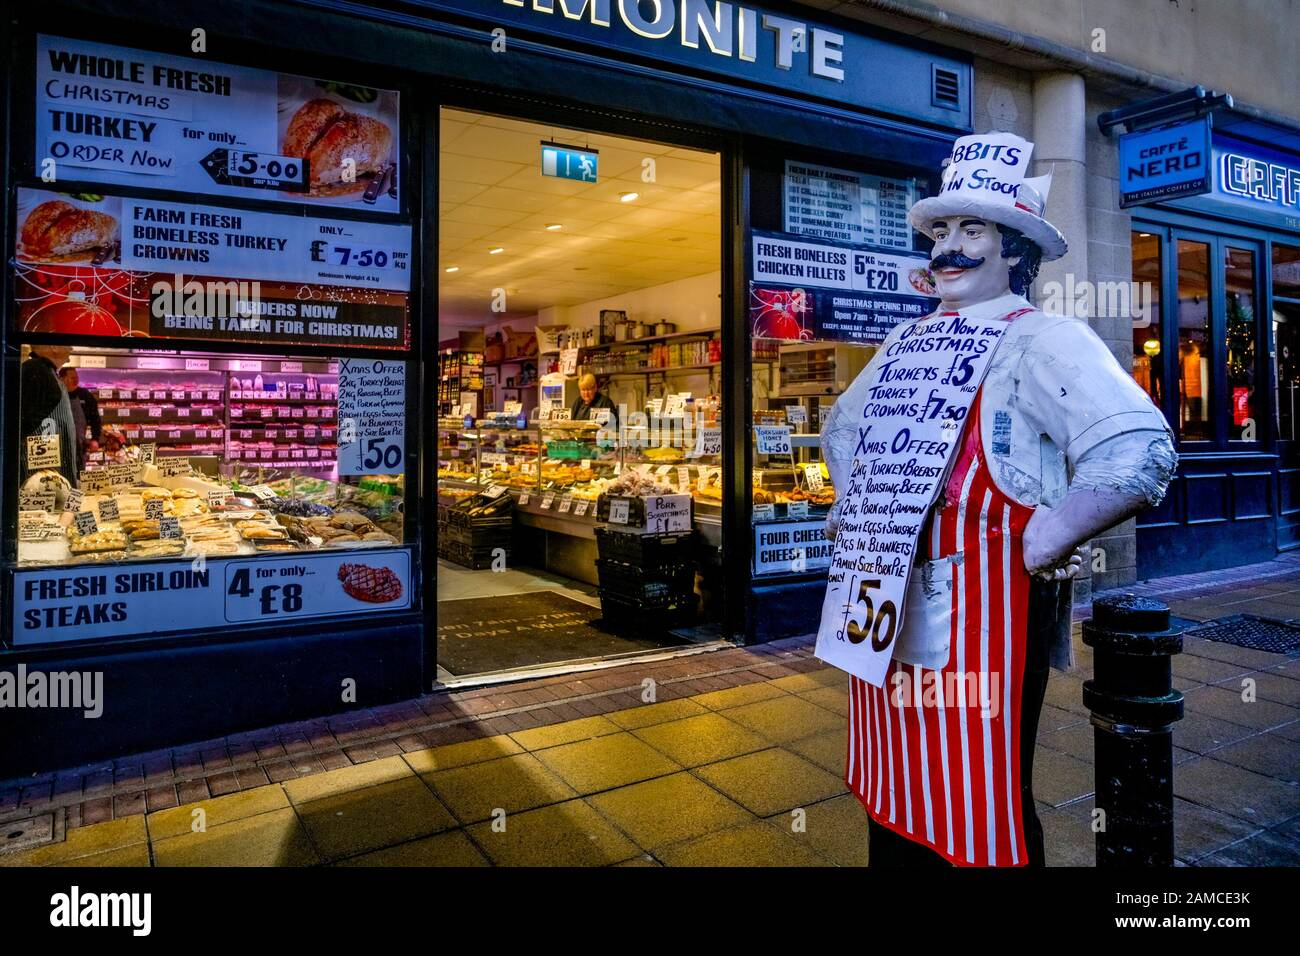 Shop Sheffield High Resolution Stock Photography And Images Alamy